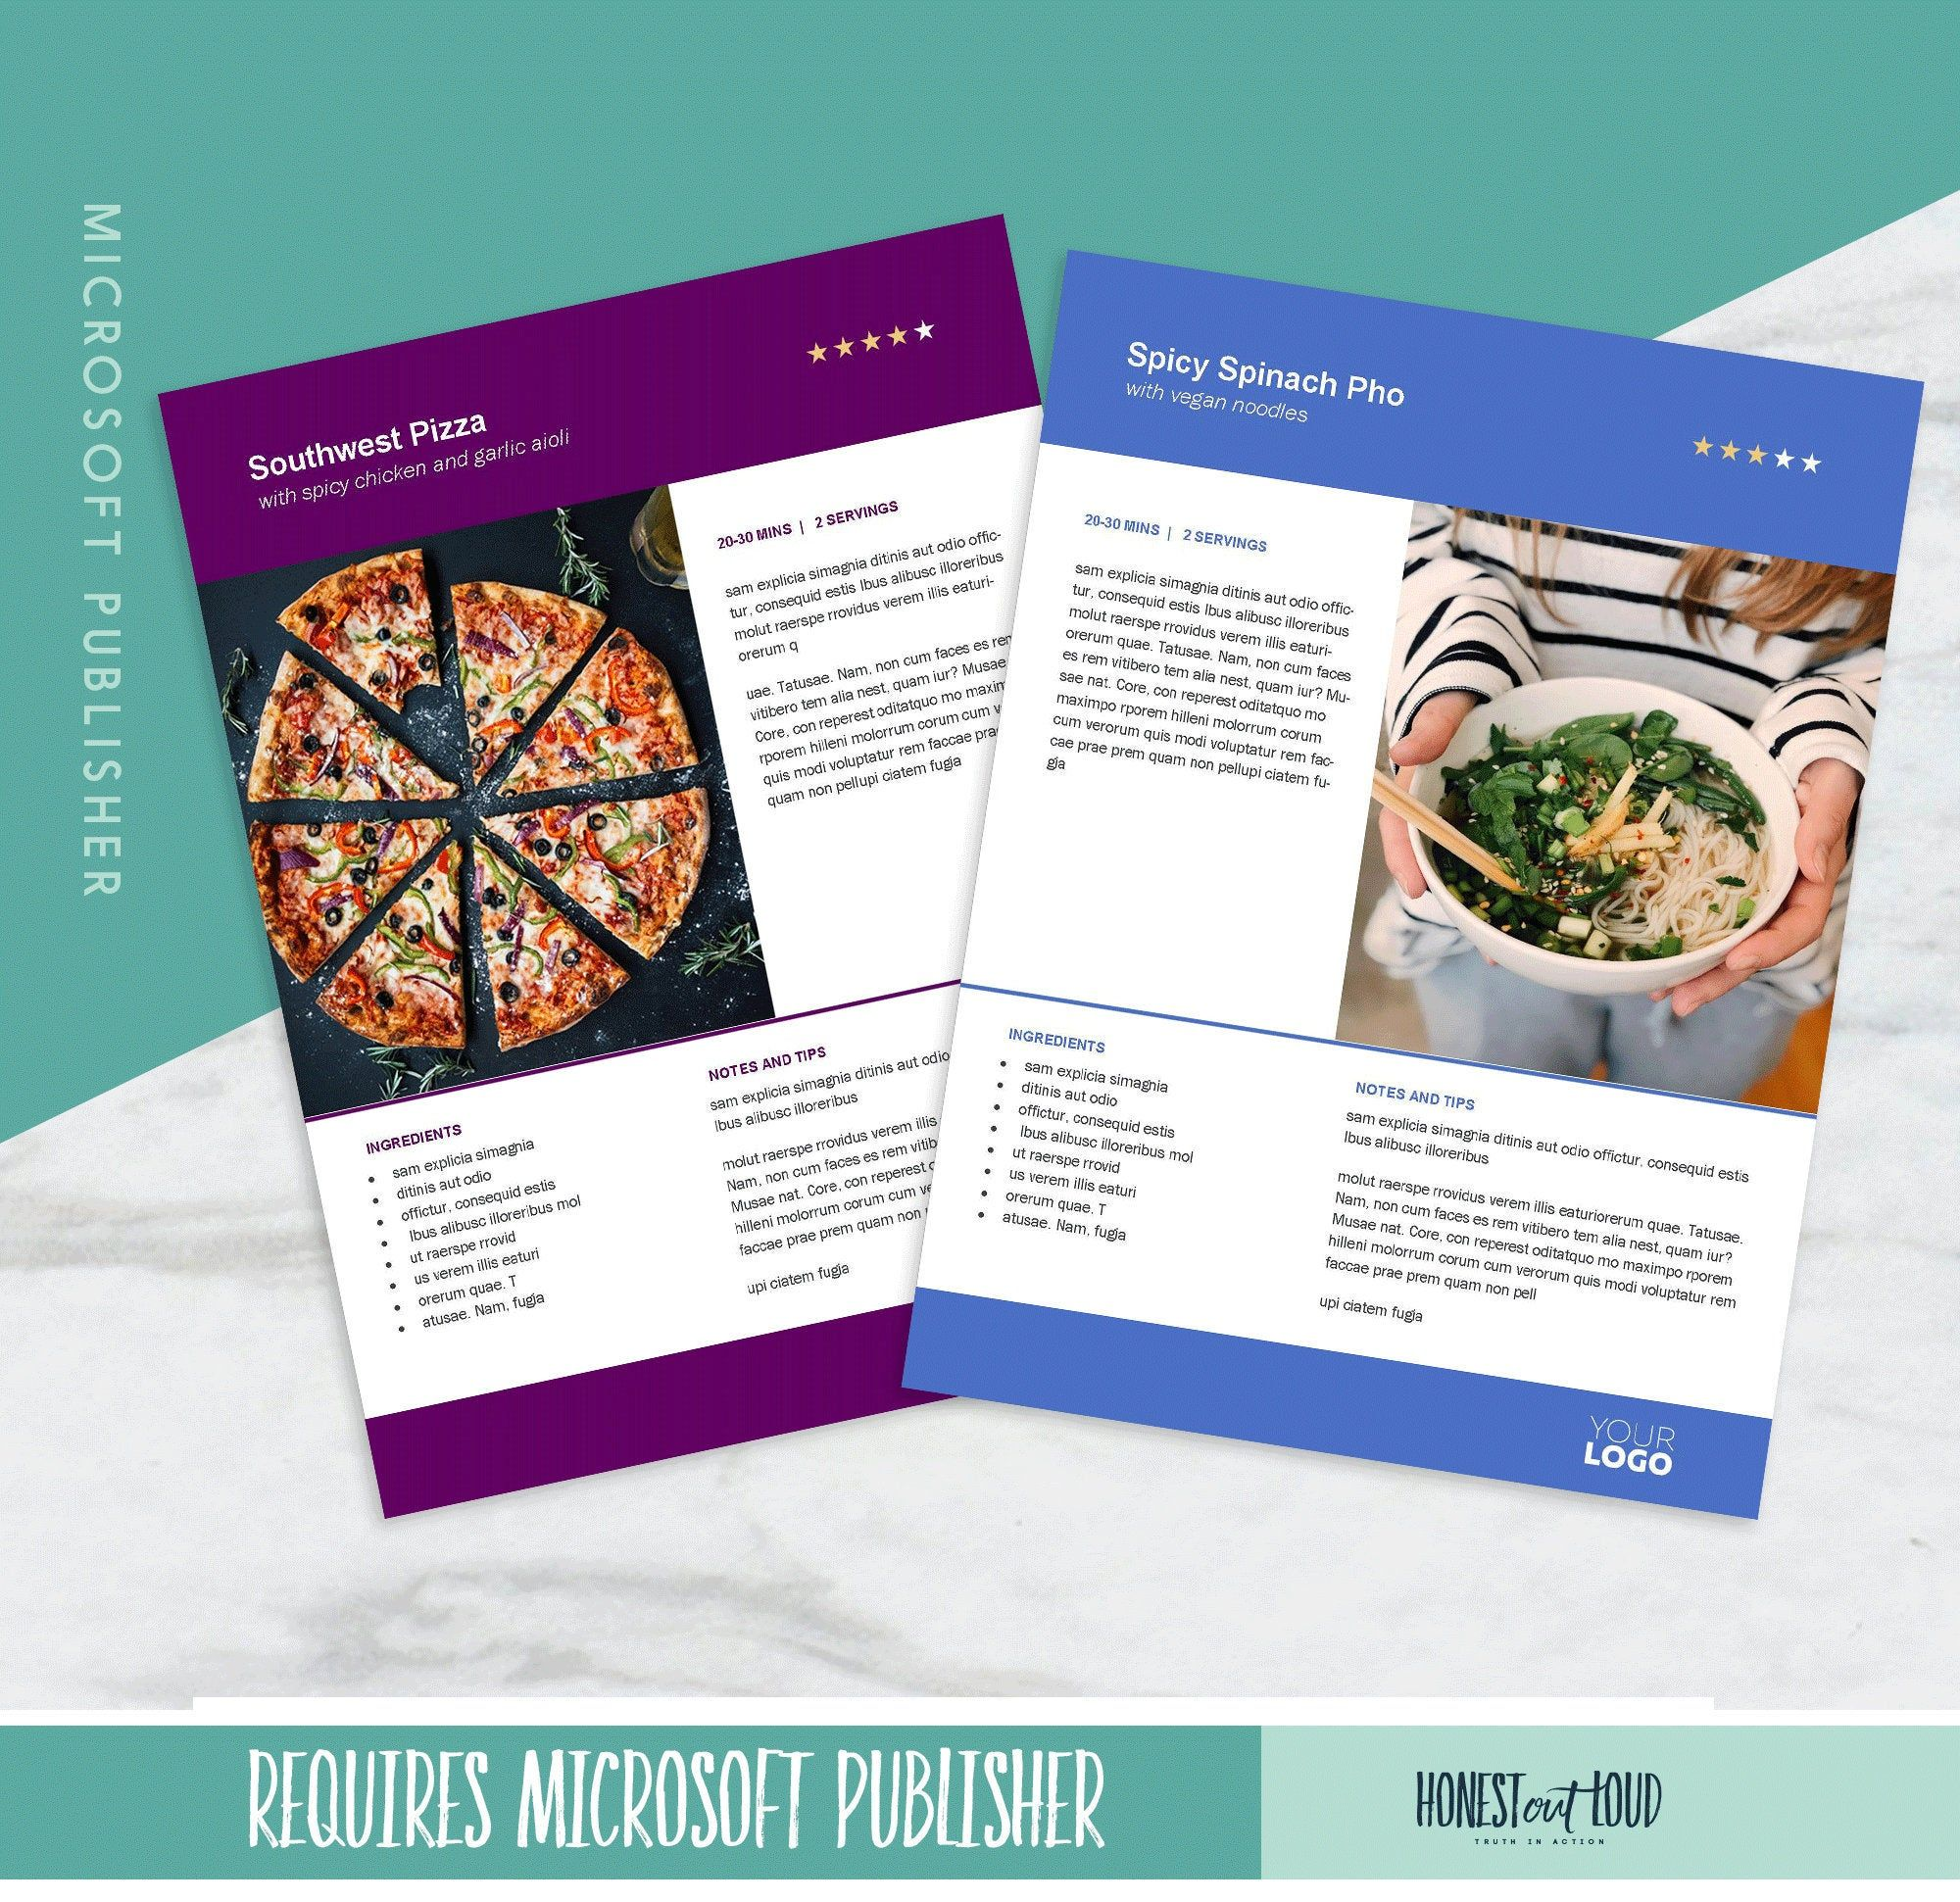 Recipe Cookbook Template Printable 8 5x11 Microsoft Publisher Instant Download For Kitchen Binde Cookbook Template Recipe Binder Template Microsoft Publisher